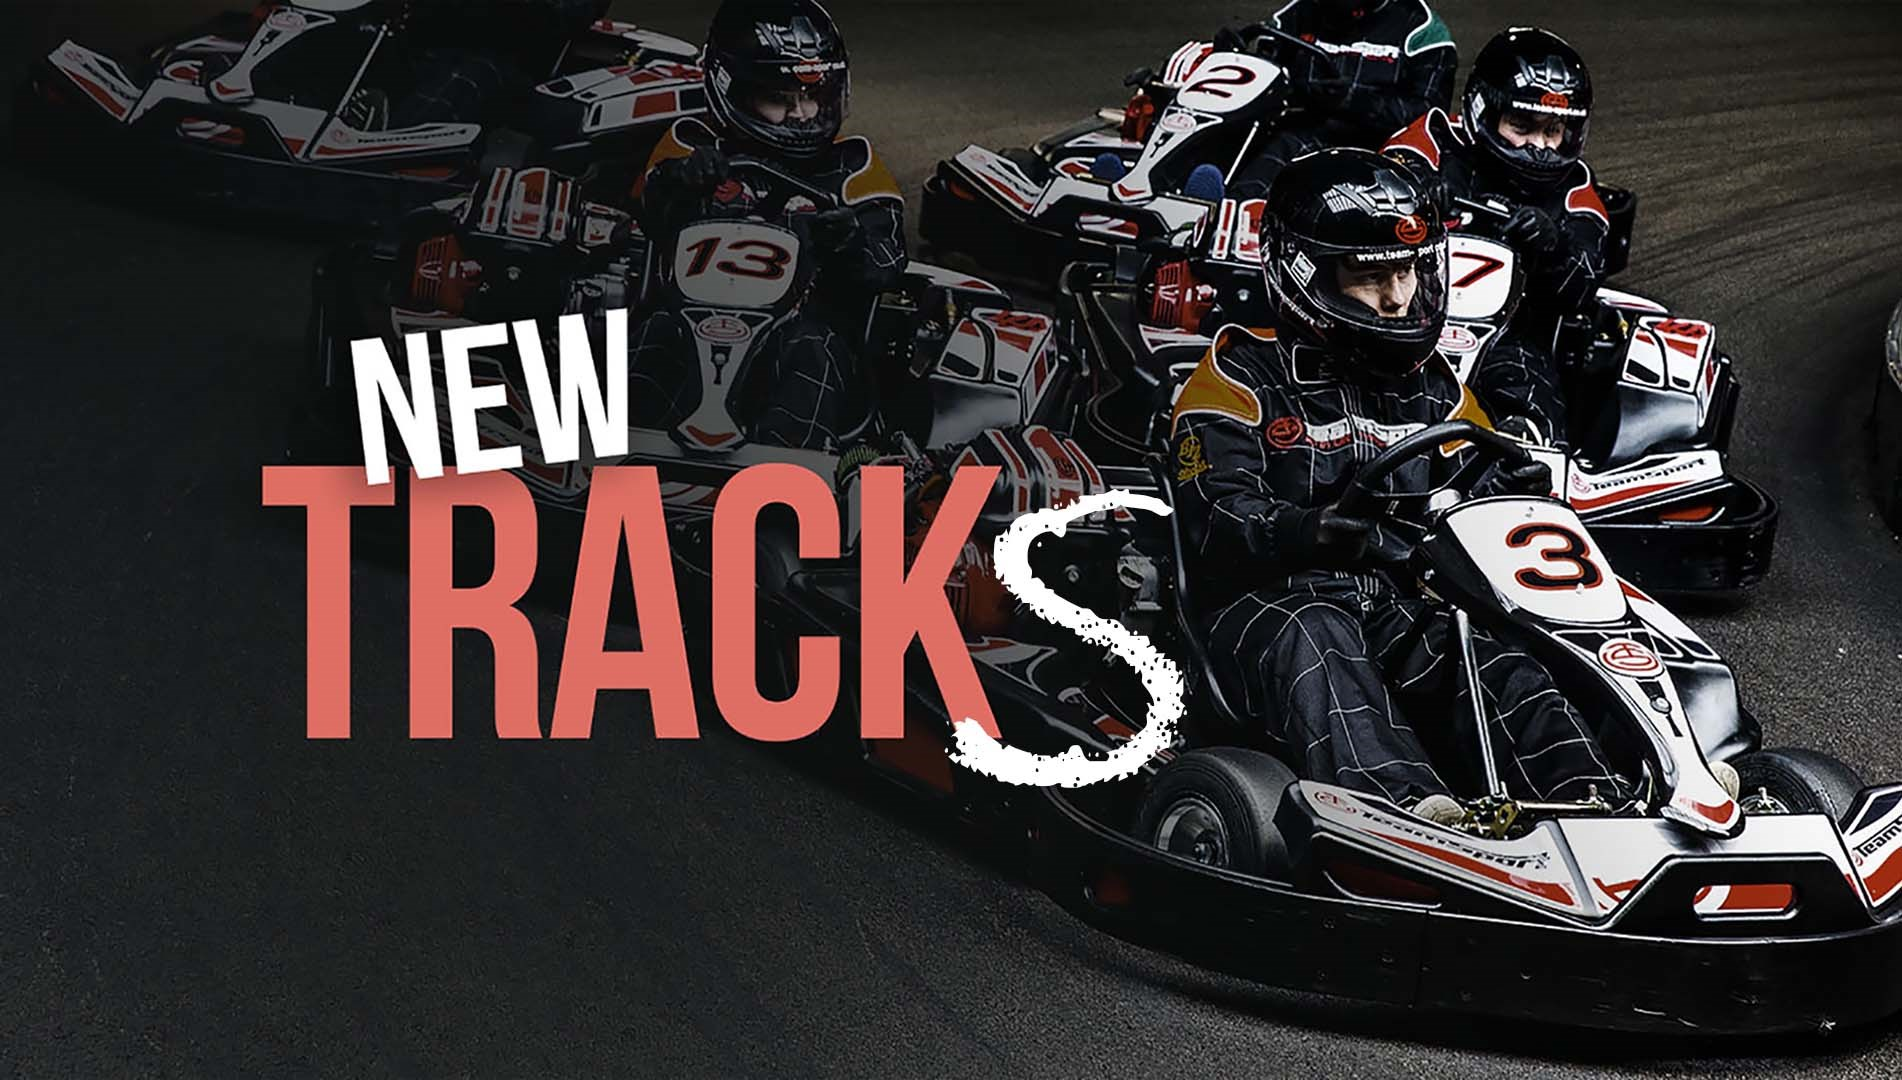 TeamSport_Go_Karting_New_Tracks_Main_Header_1920x1080-min.jpg